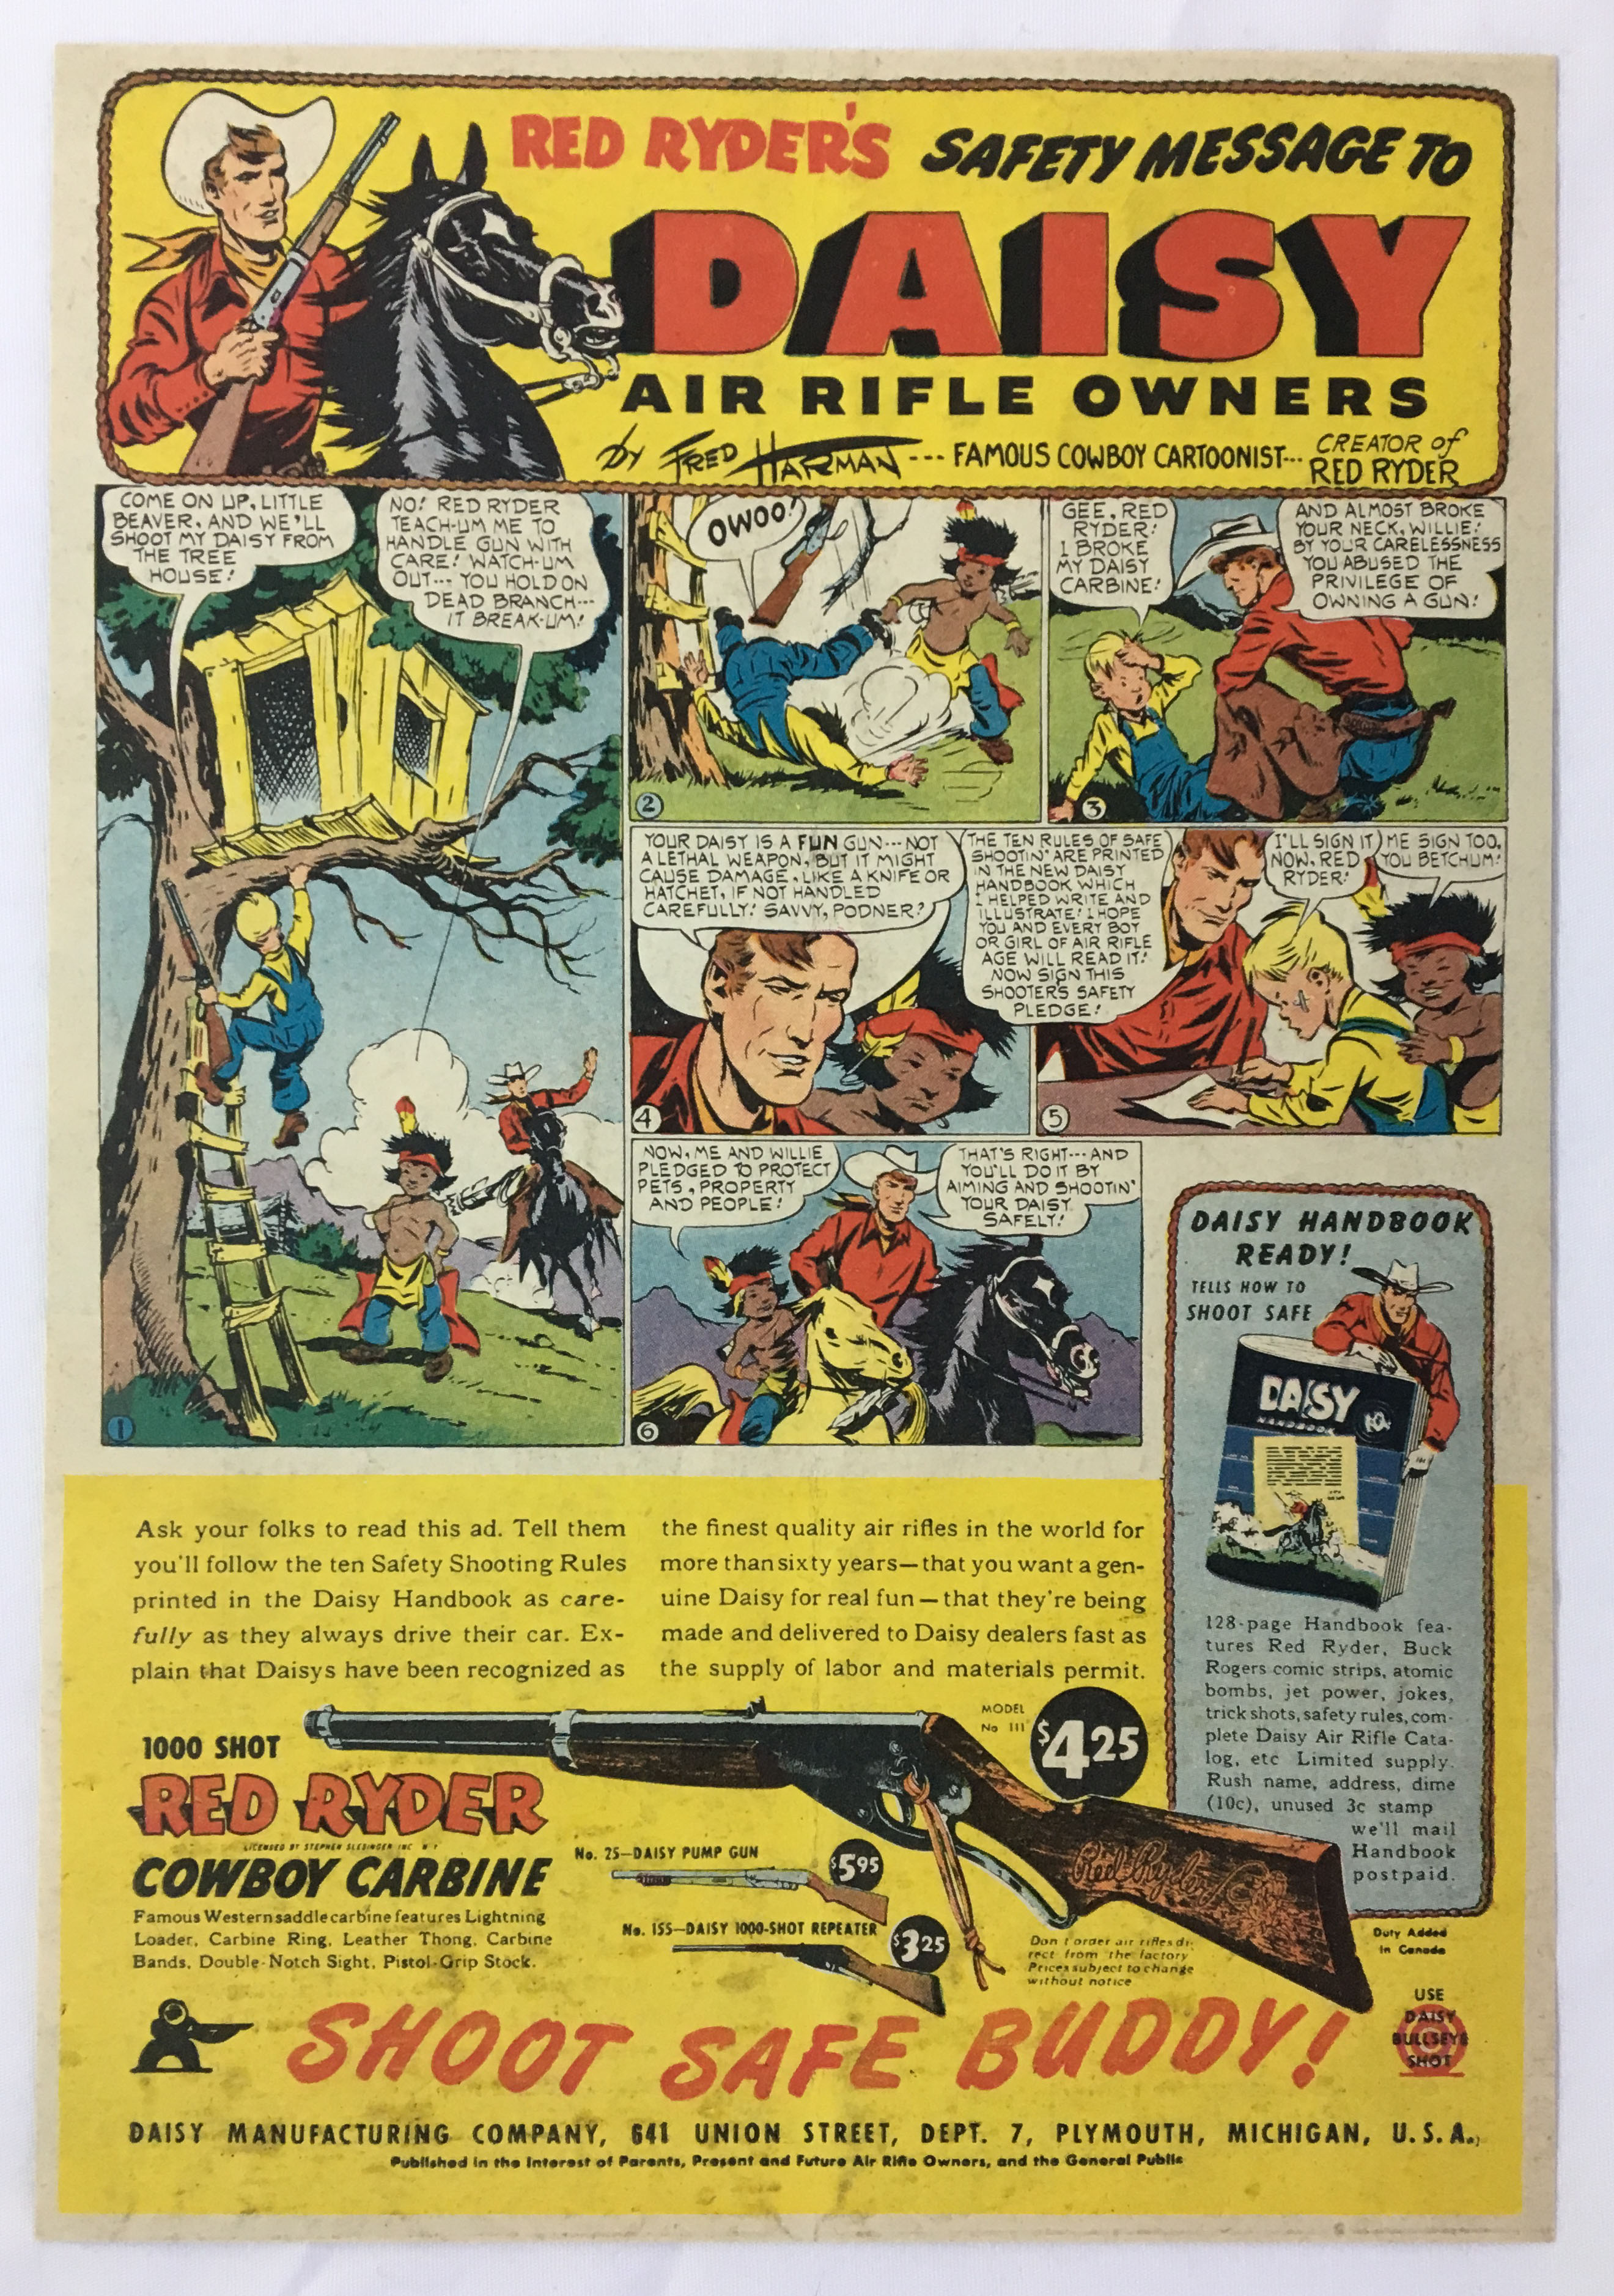 70bcec1877 Details about 1947 Daisy Air Rifle Owners Safety Message ad page ~ RED  RYDER COWBOY CARBINE